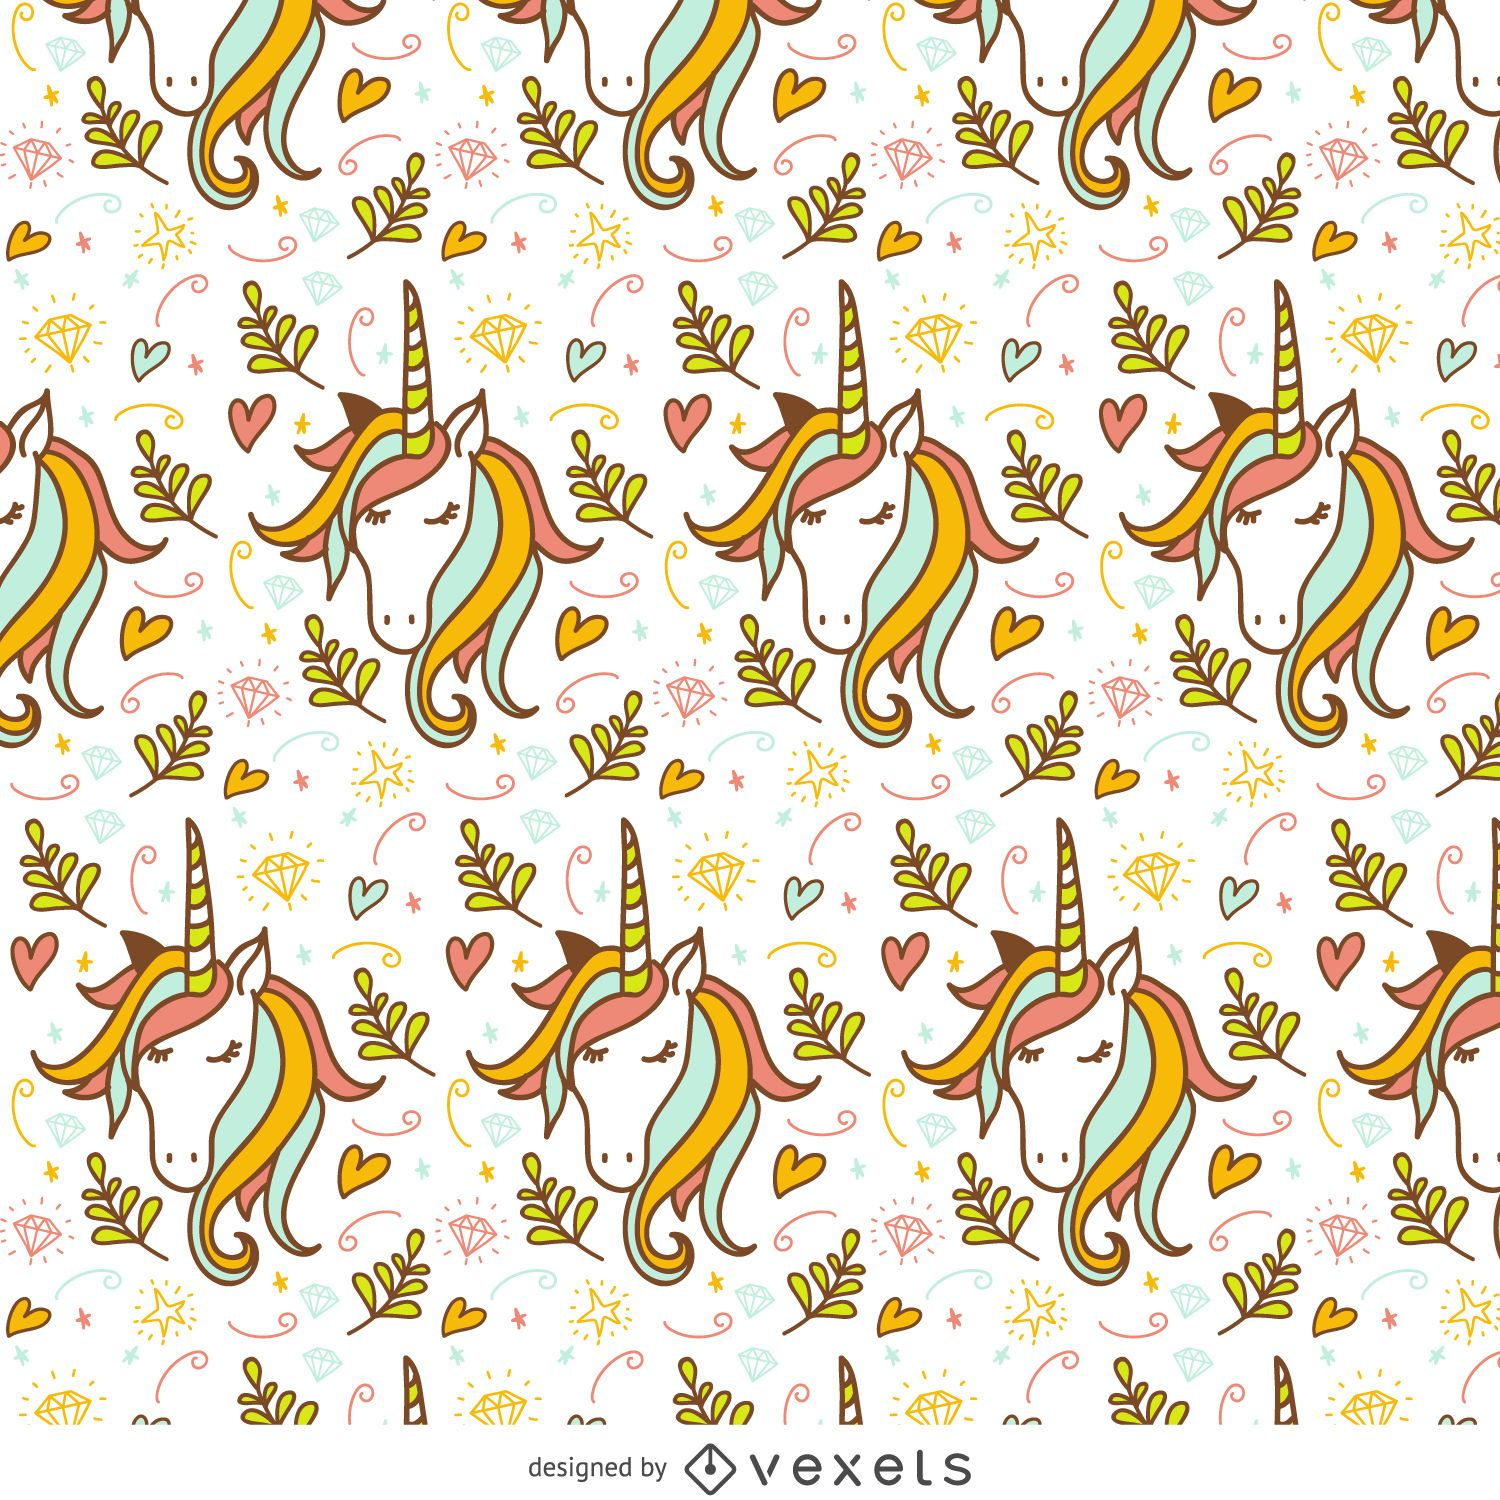 Unicorn Doodle Pattern Vector Download